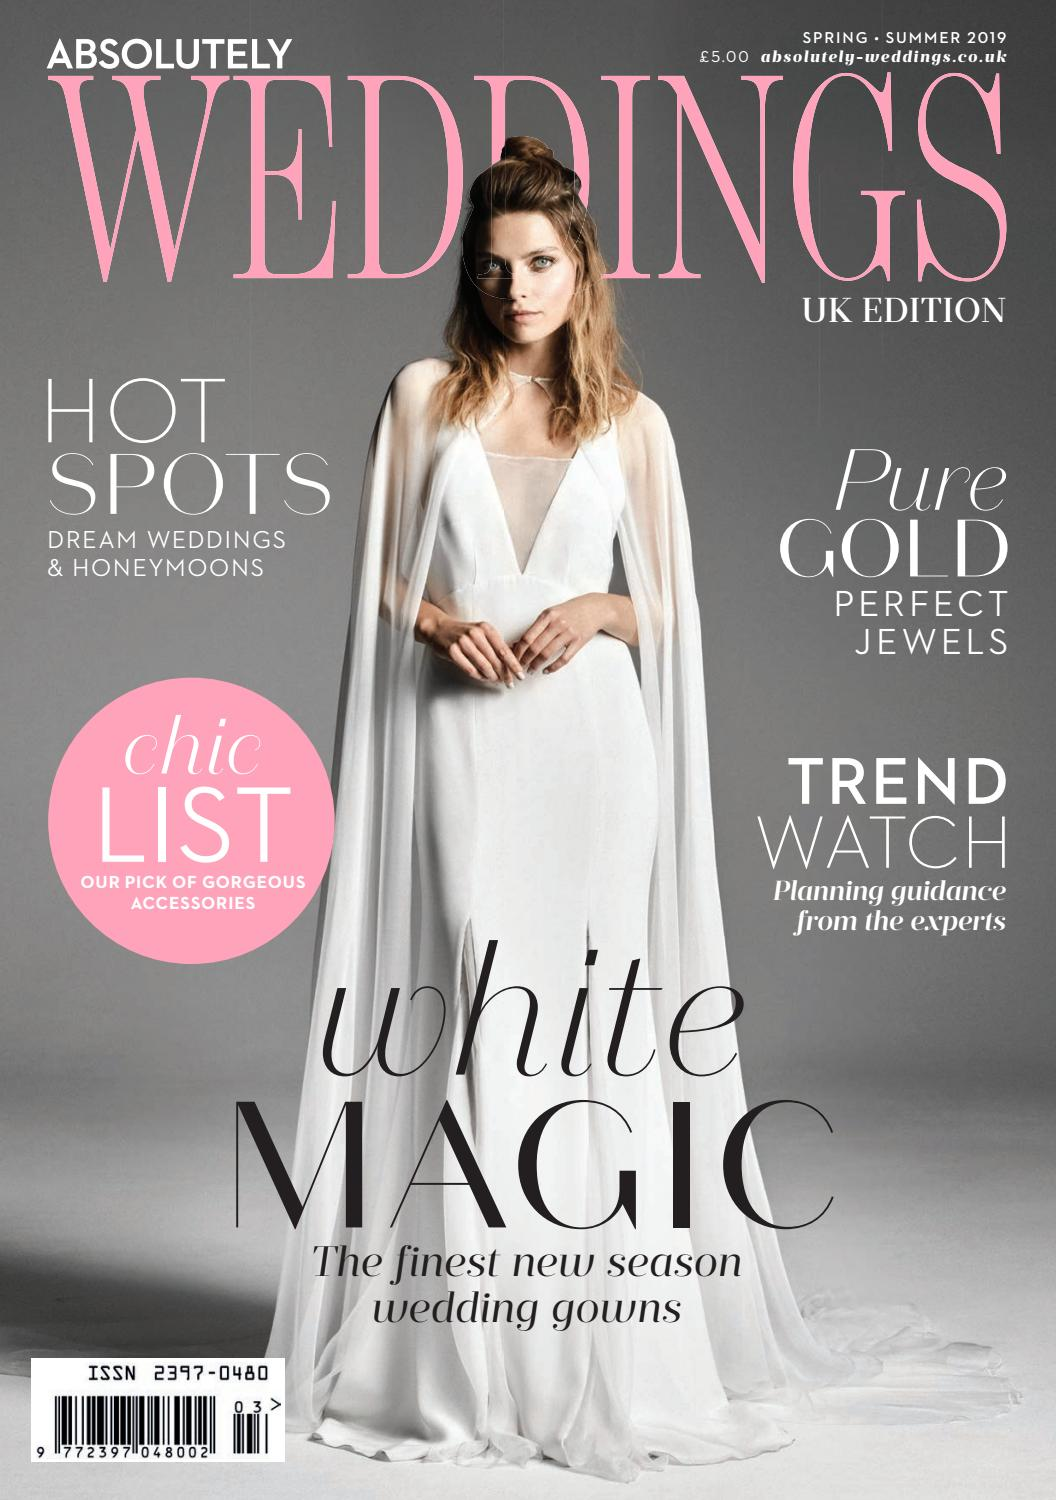 d28752382 Absolutely Weddings Spring Summer 2019 by Zest Media London - issuu